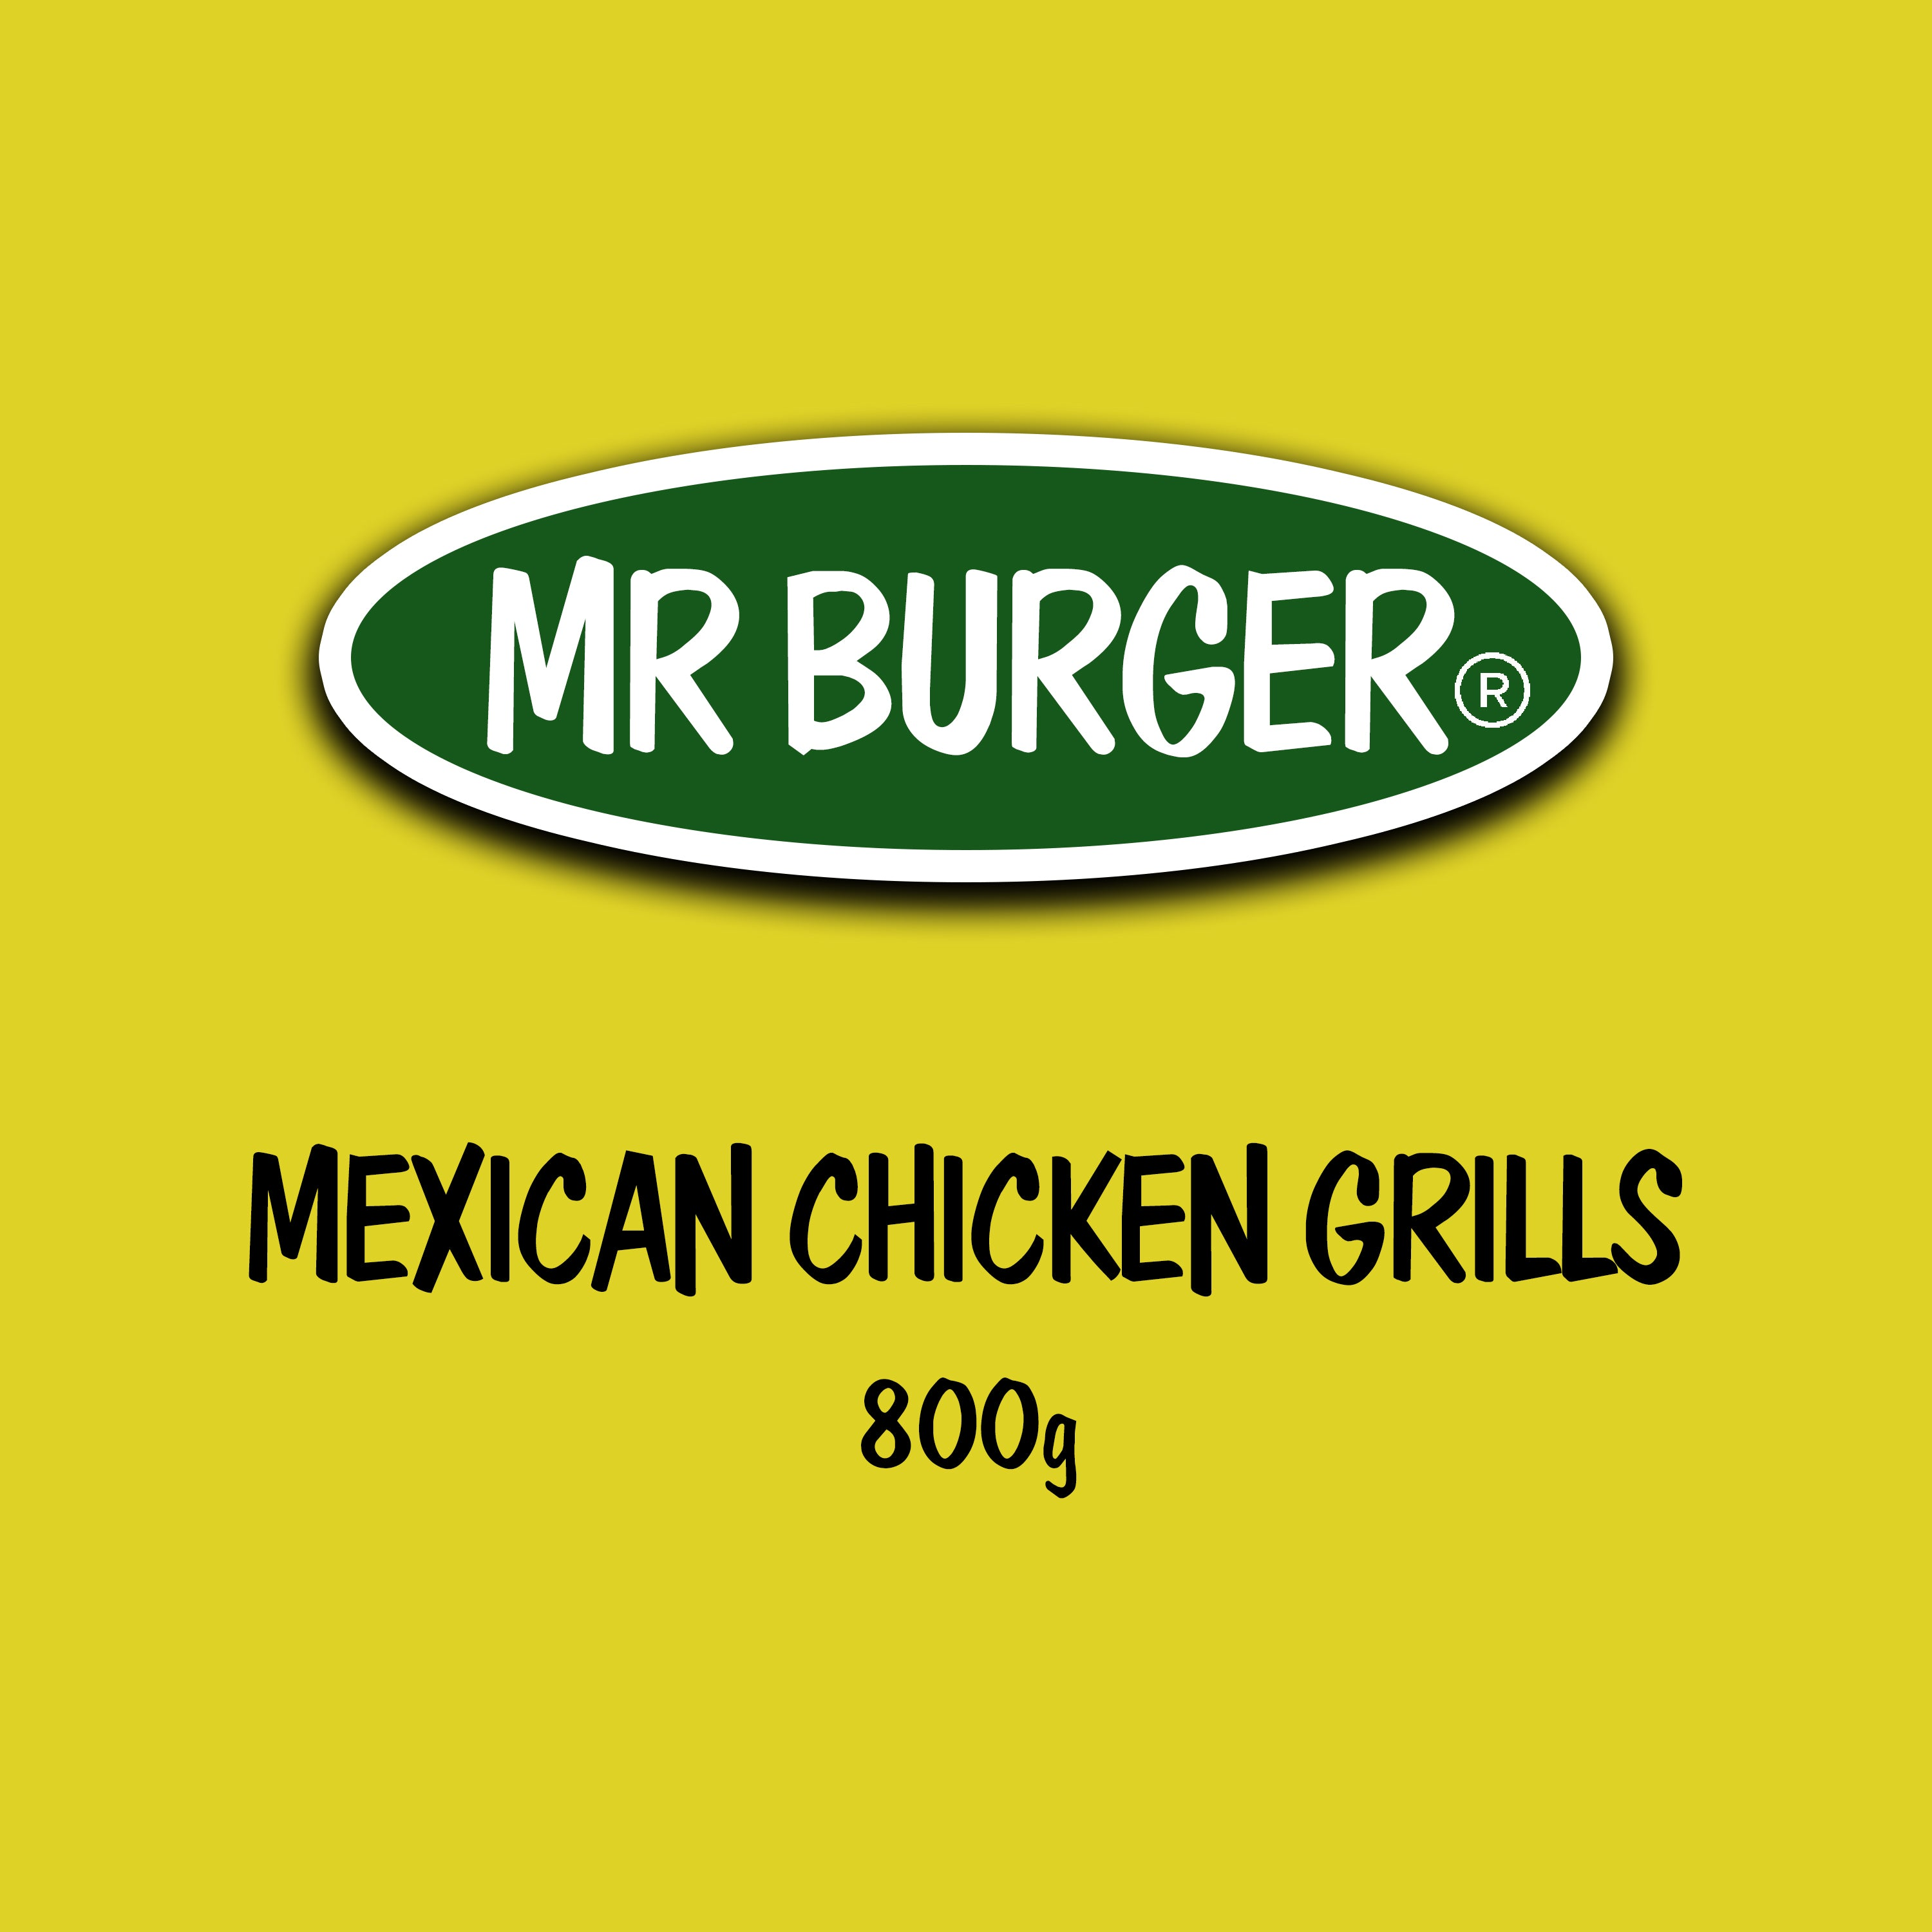 Mr Burger Mexican Chicken Grills (800g) - The Halal Food Shop